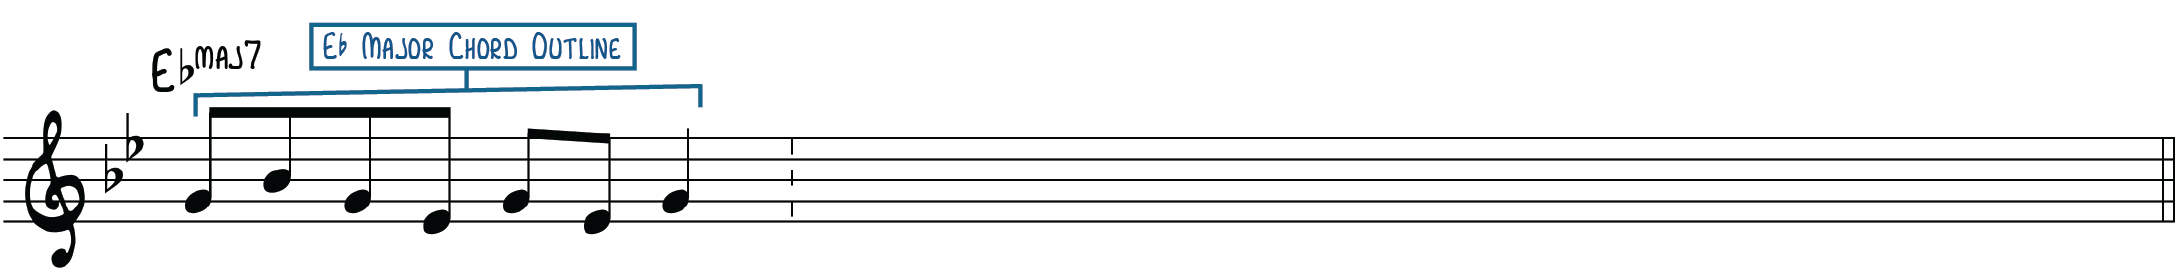 Chord Outline Ex. 1: E♭ Major